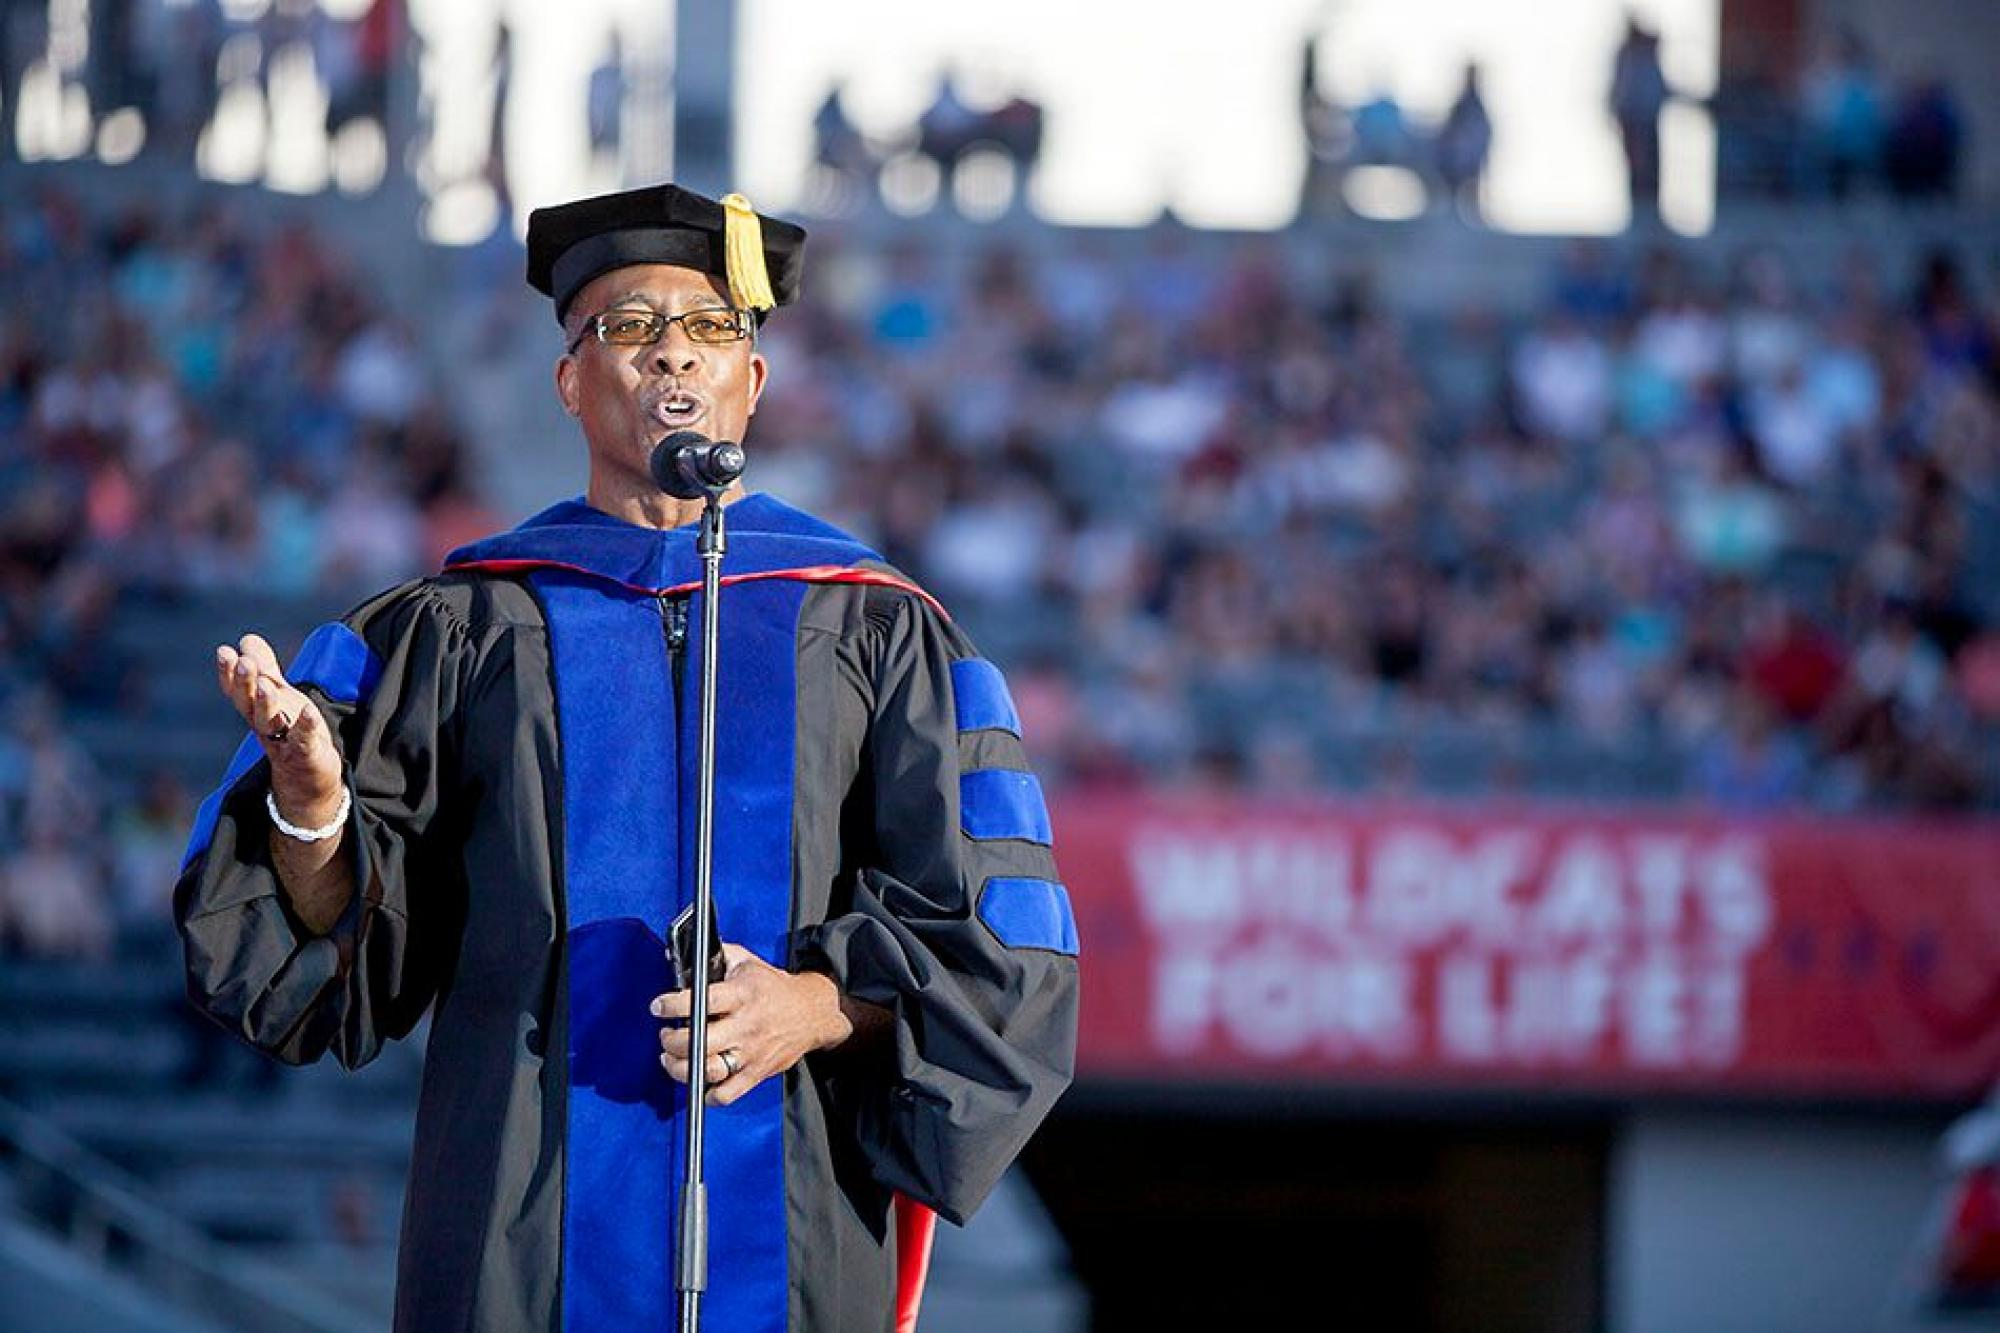 Bryan Carter, an associate professor of Africana studies, is among the faculty members who will participate in the Commencement pre-show.